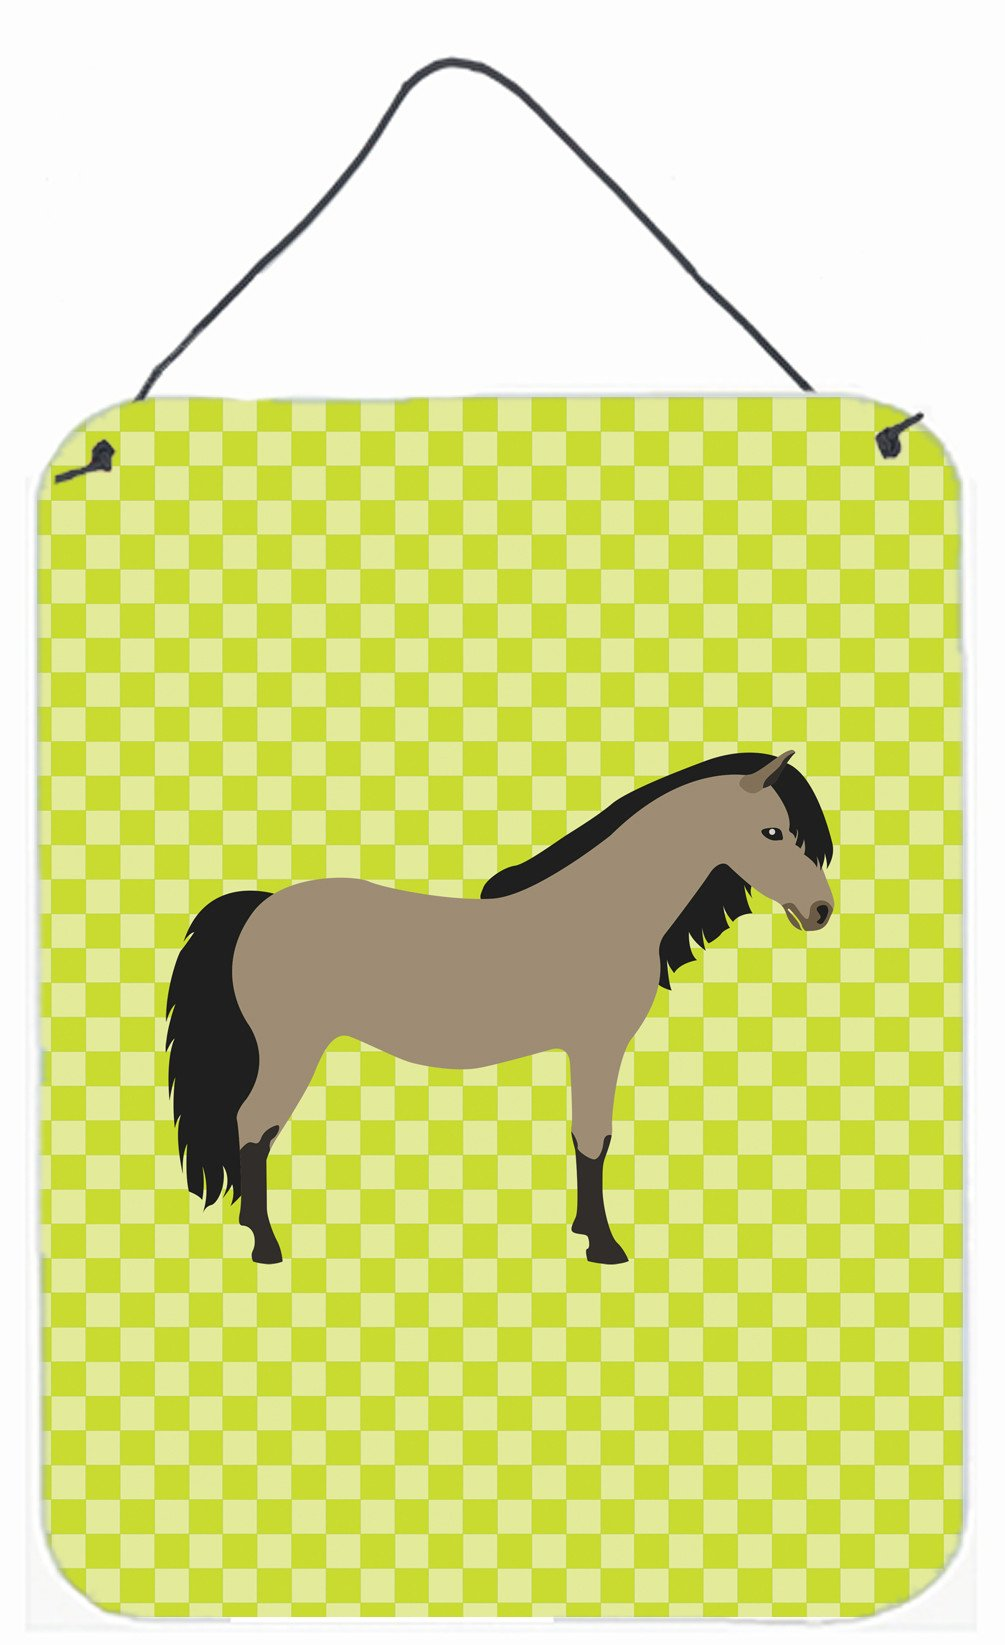 Welsh Pony Horse Green Wall or Door Hanging Prints BB7736DS1216 by Caroline's Treasures